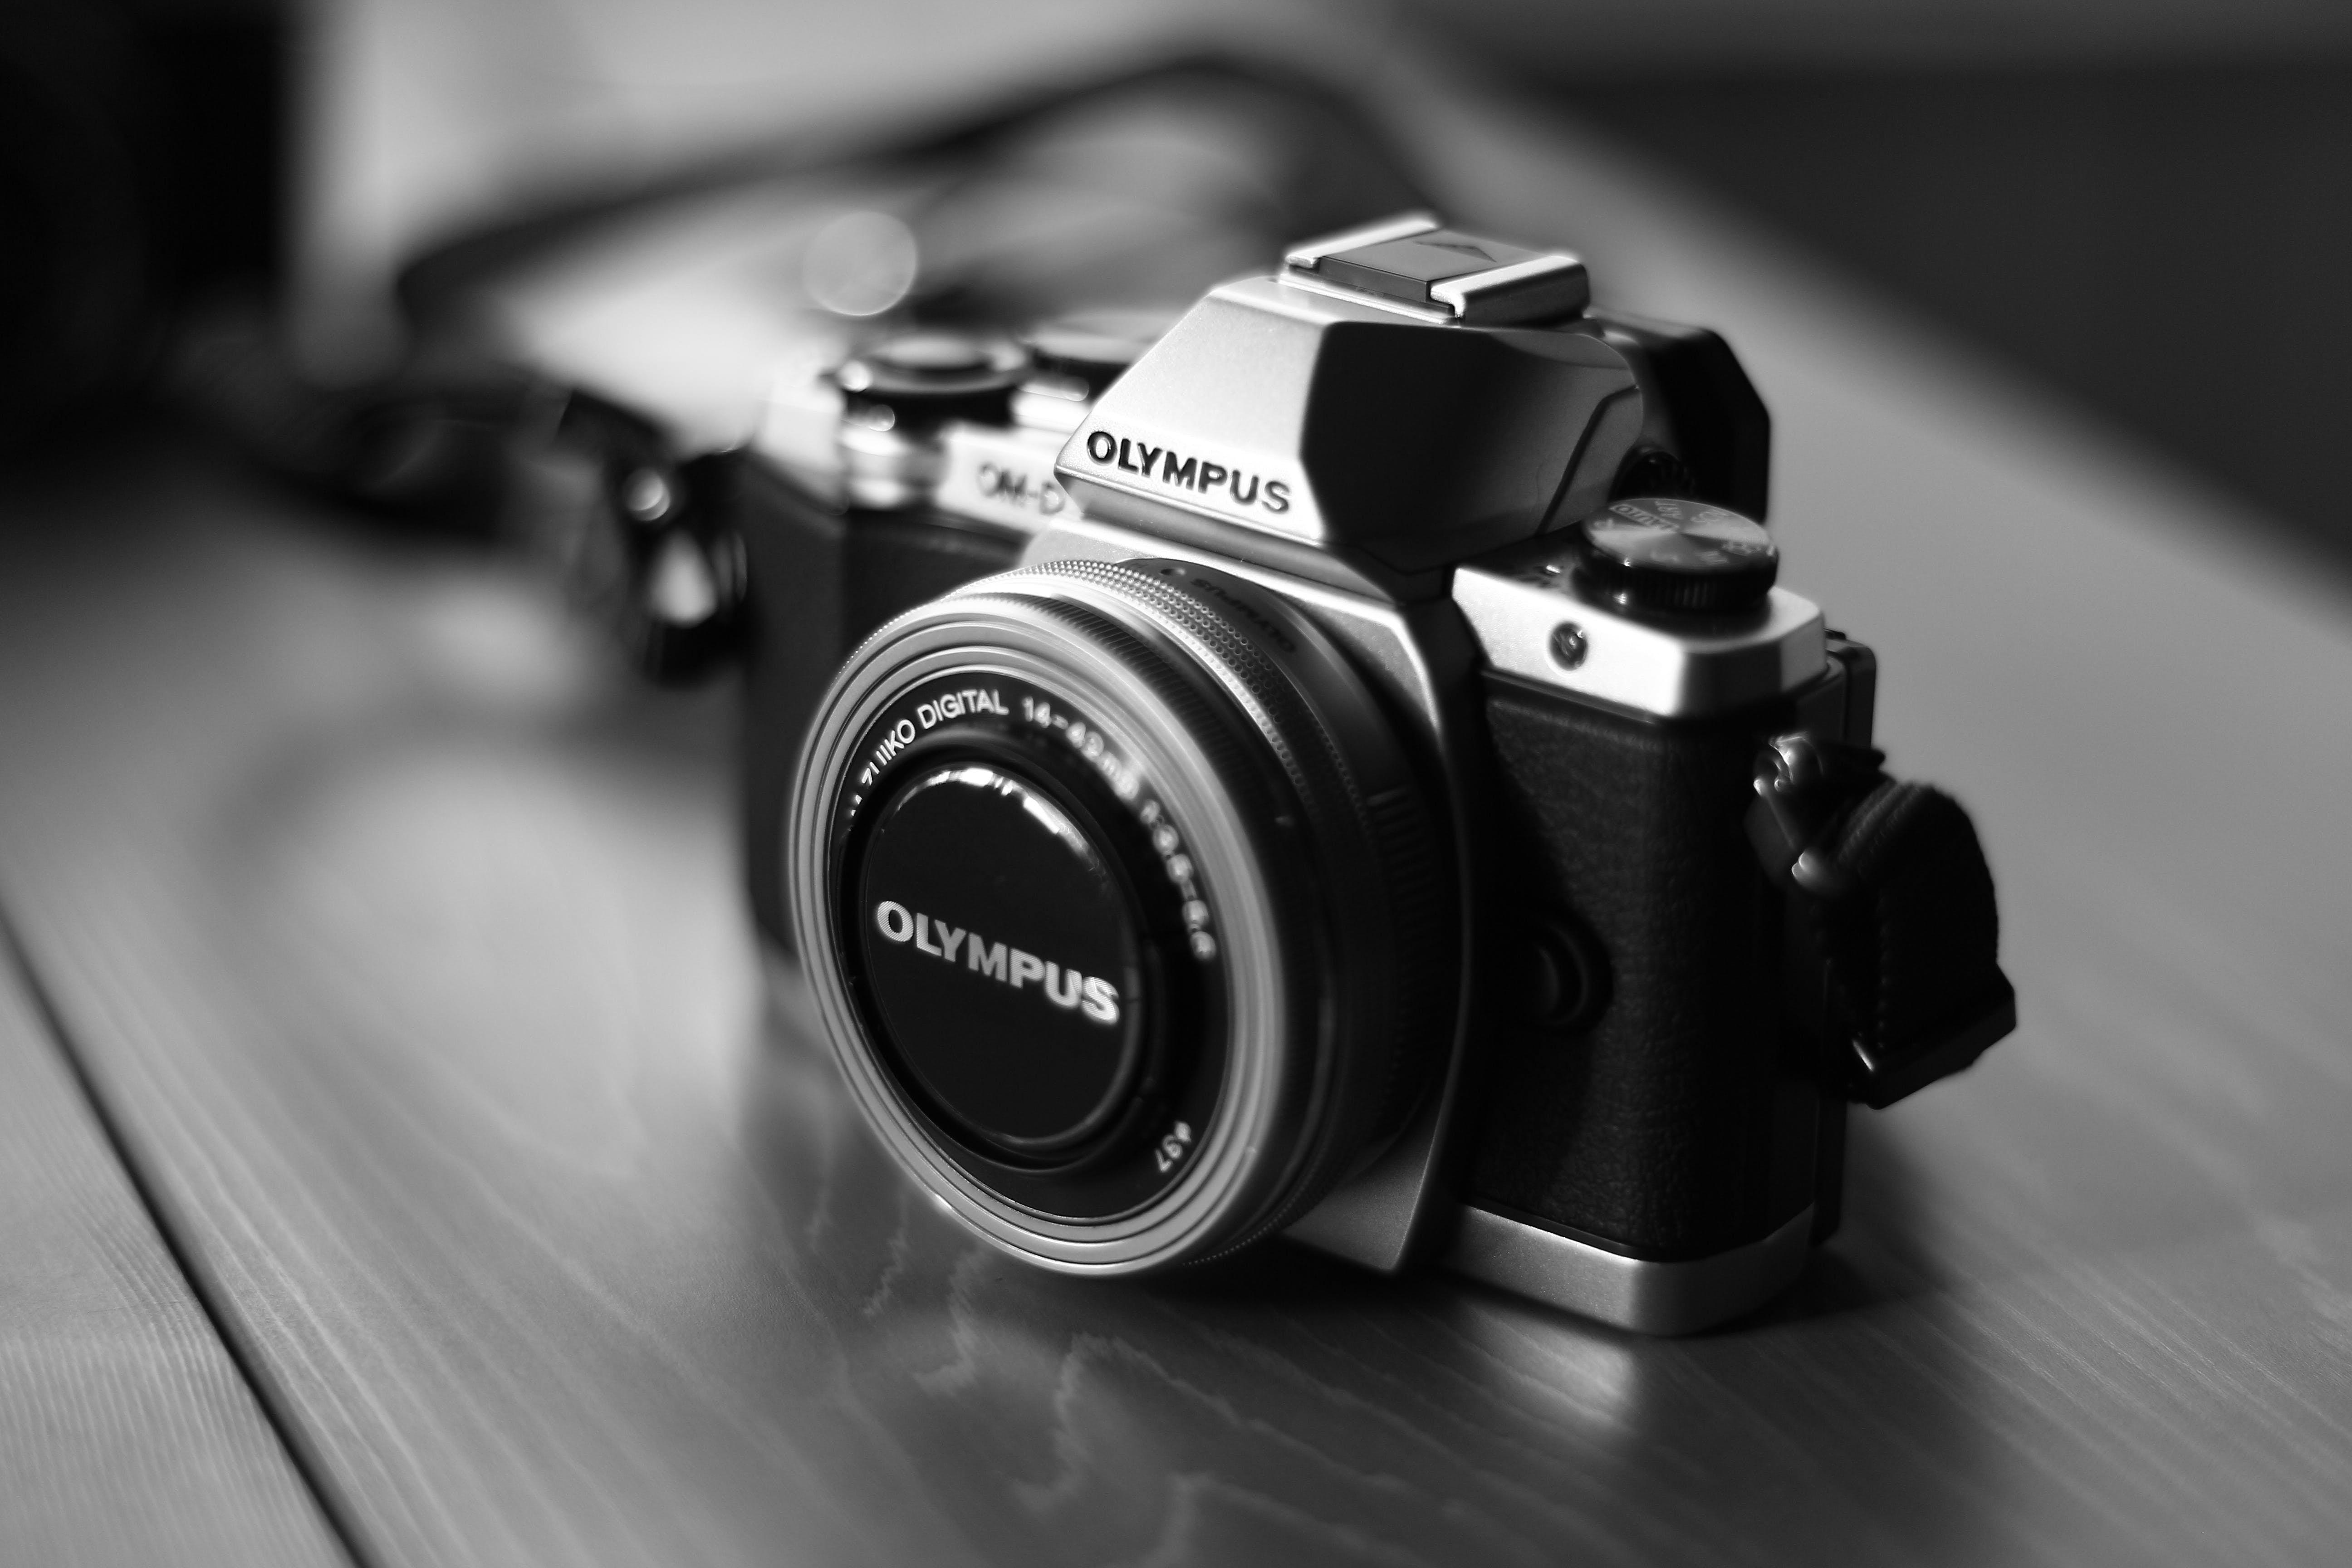 Grayscale Photo of Black and Gray Olympus Camera